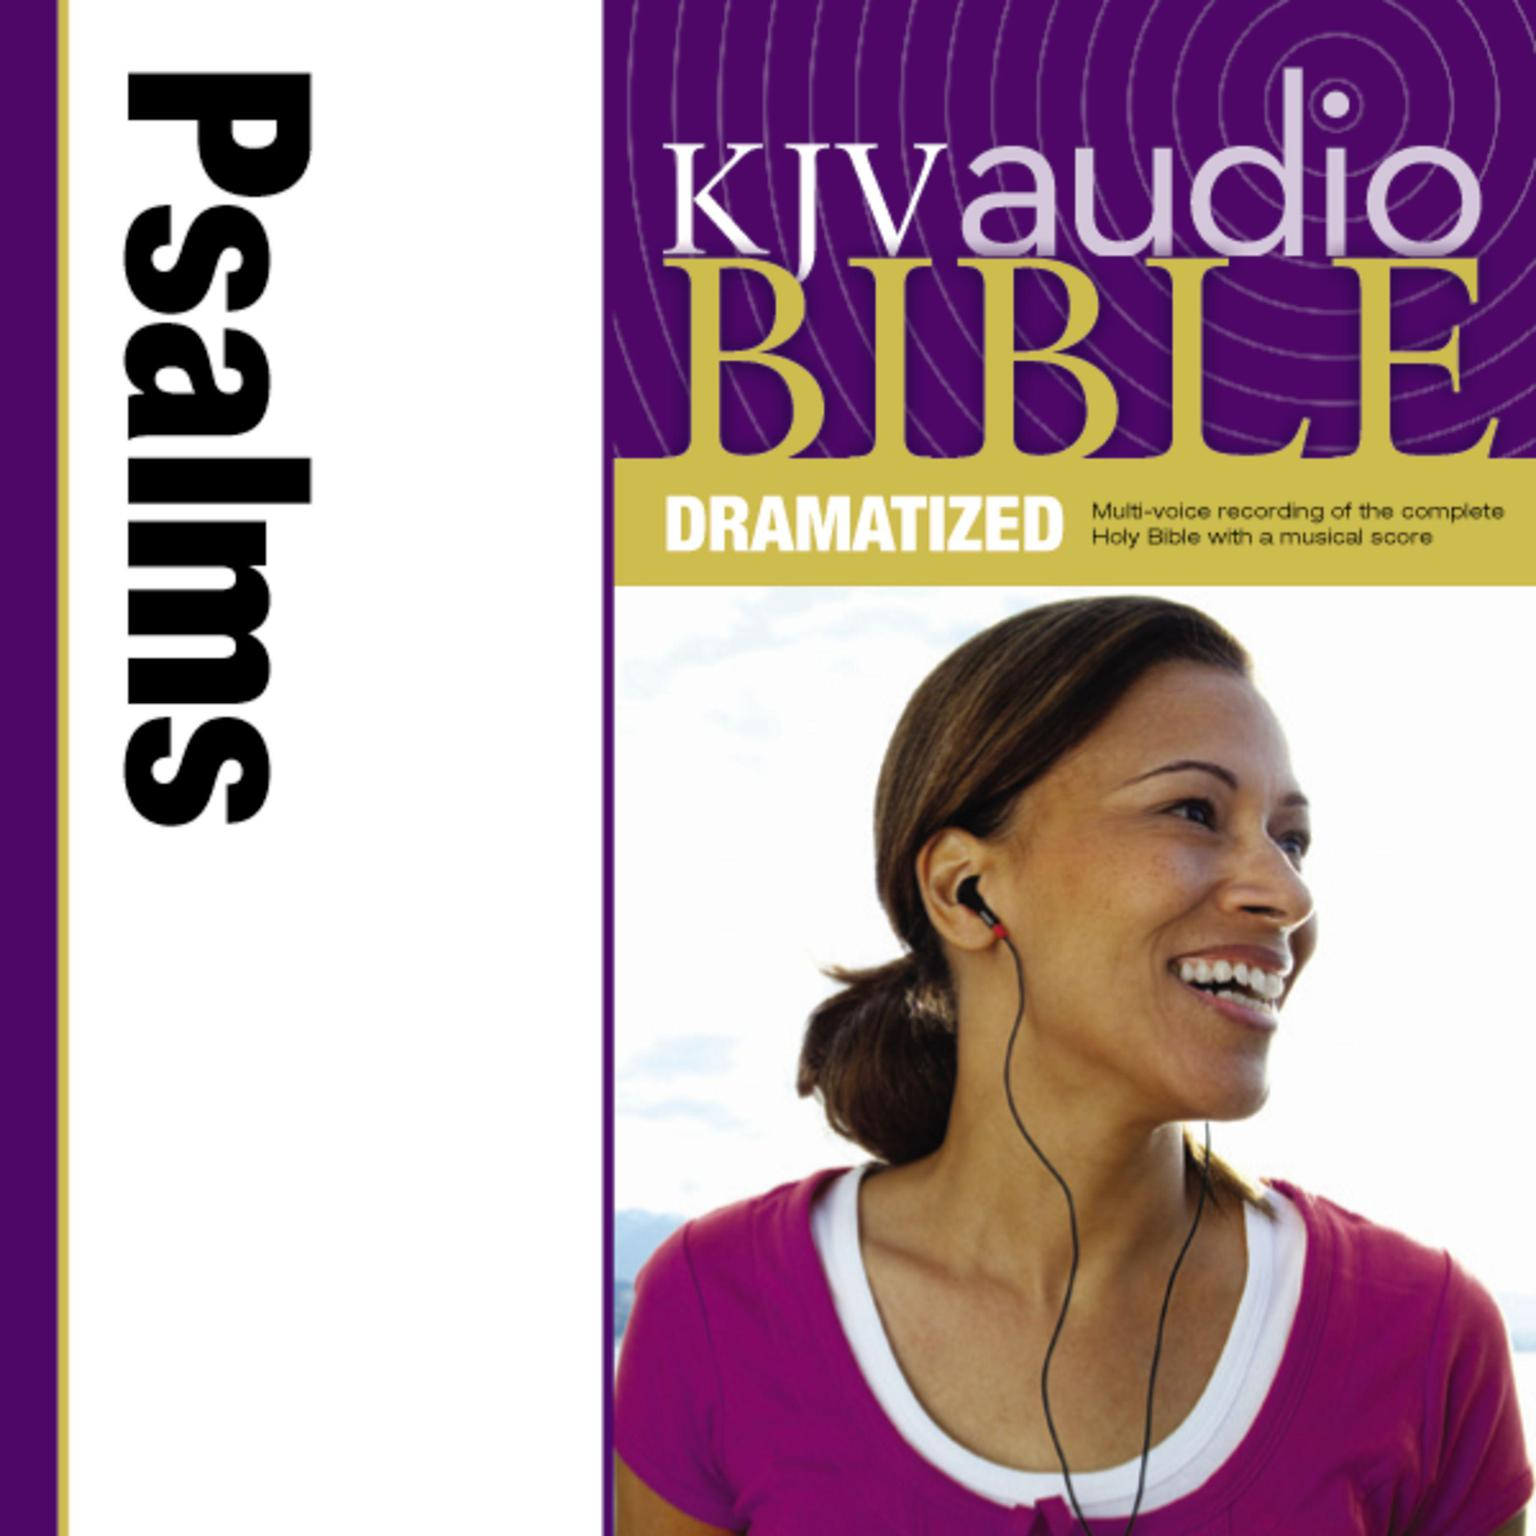 Printable KJV, Audio Bible, Dramatized: Psalms, Audio Download Audiobook Cover Art